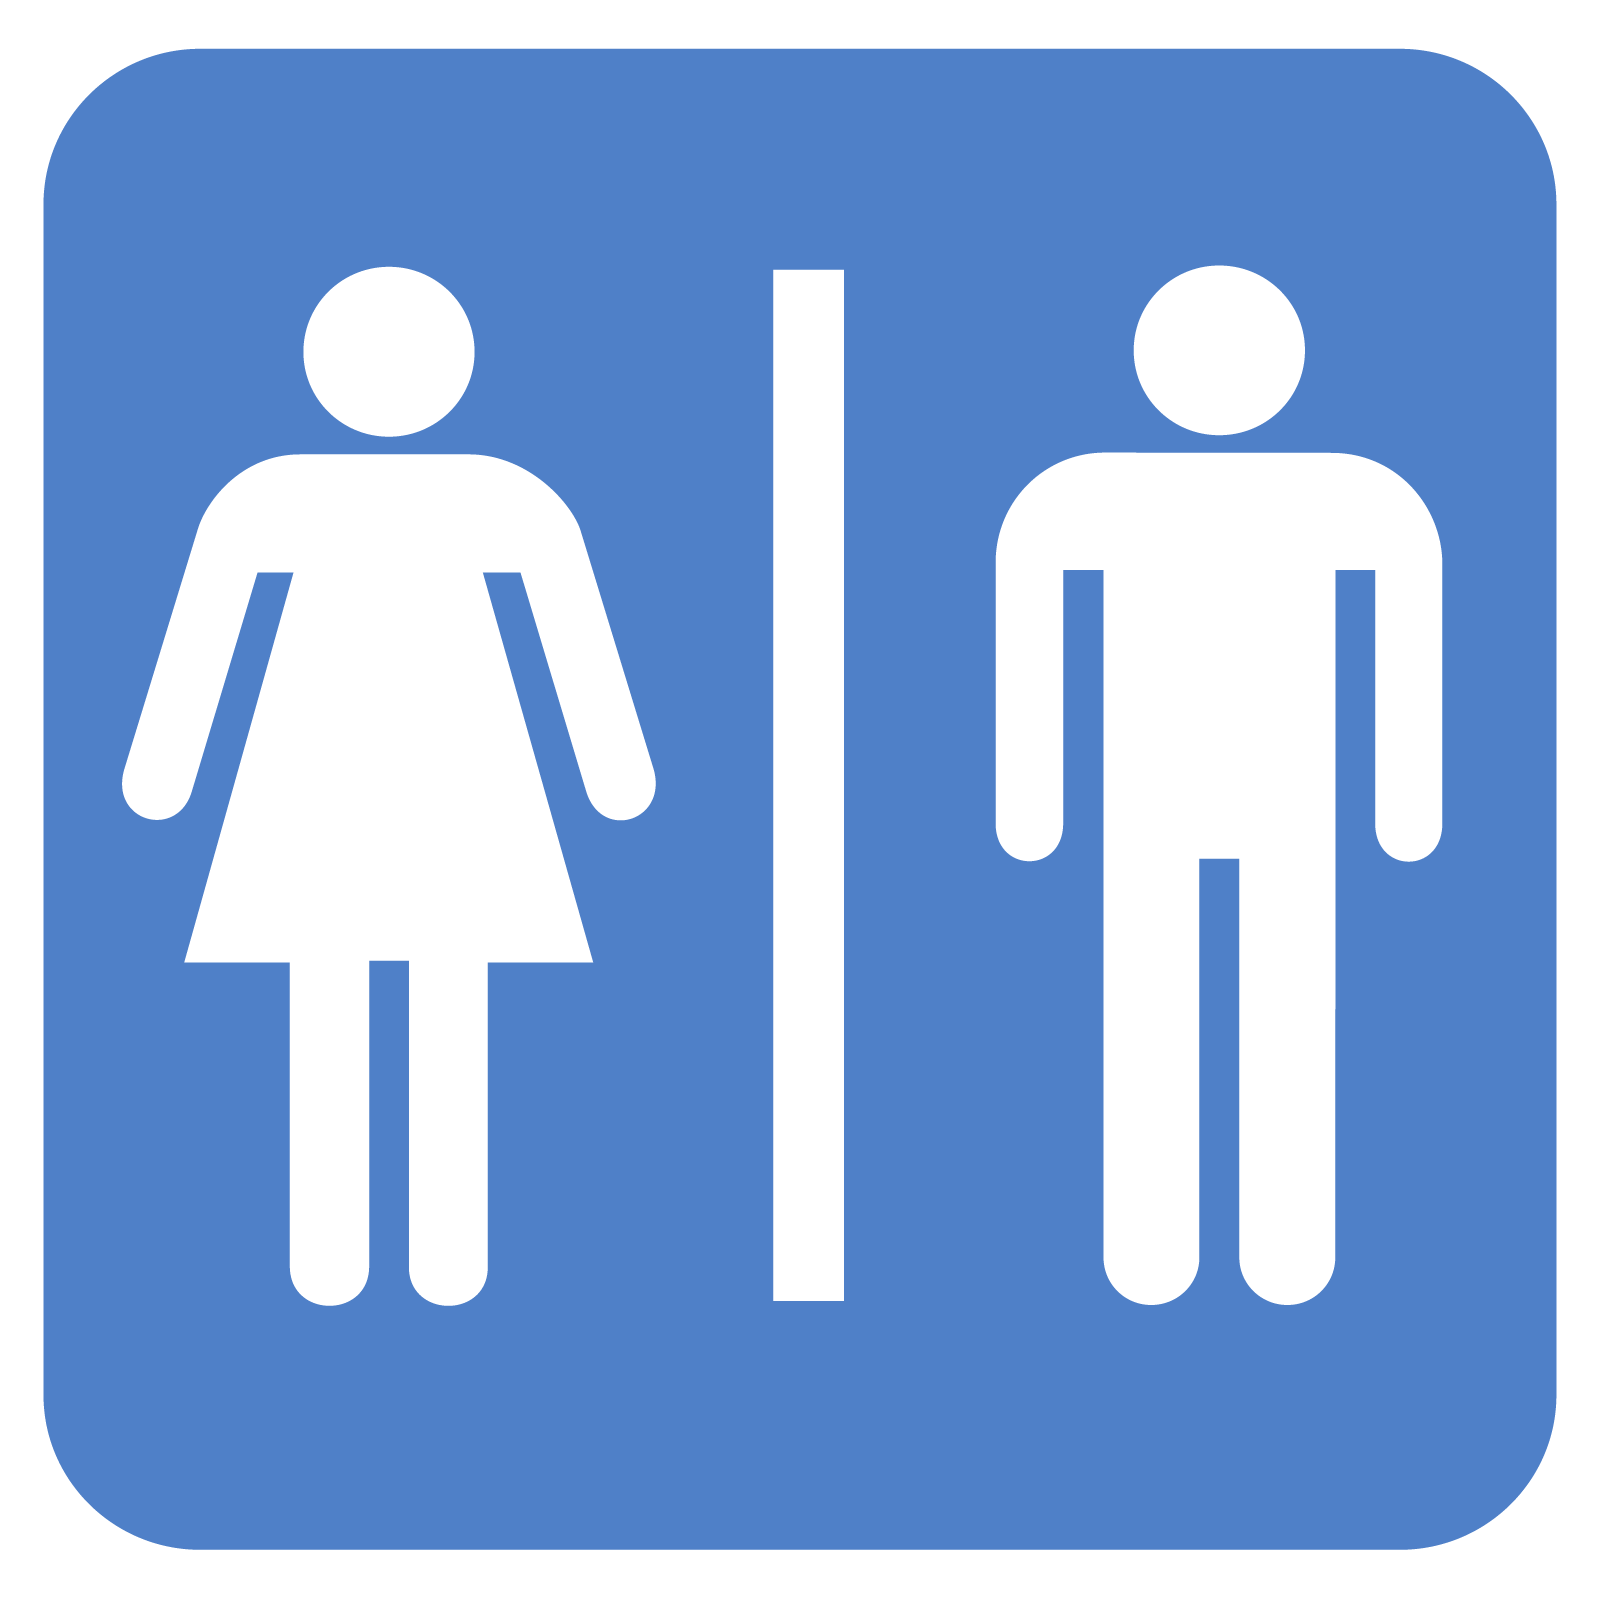 sign and post balancing gender guest images but figure is mcd circles sex toilets on socimages go the top sociological like bathroom female where male standard two shaped